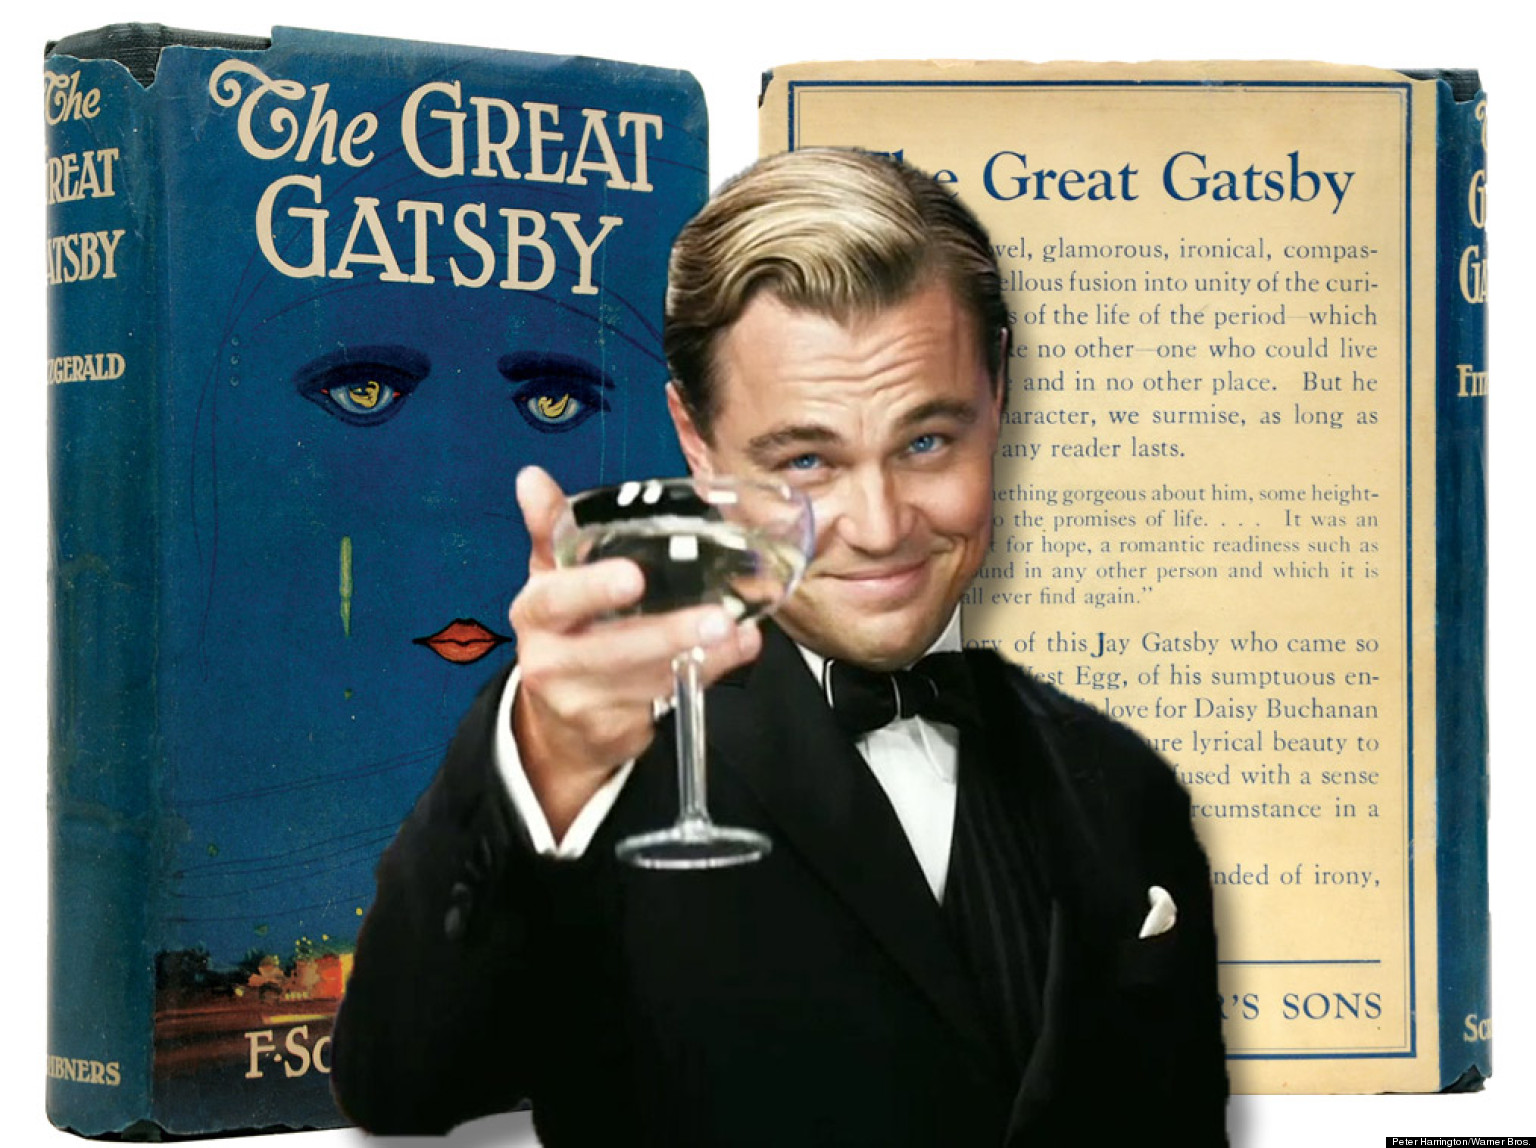 A description of the great gatsby author f scott fitzgerald